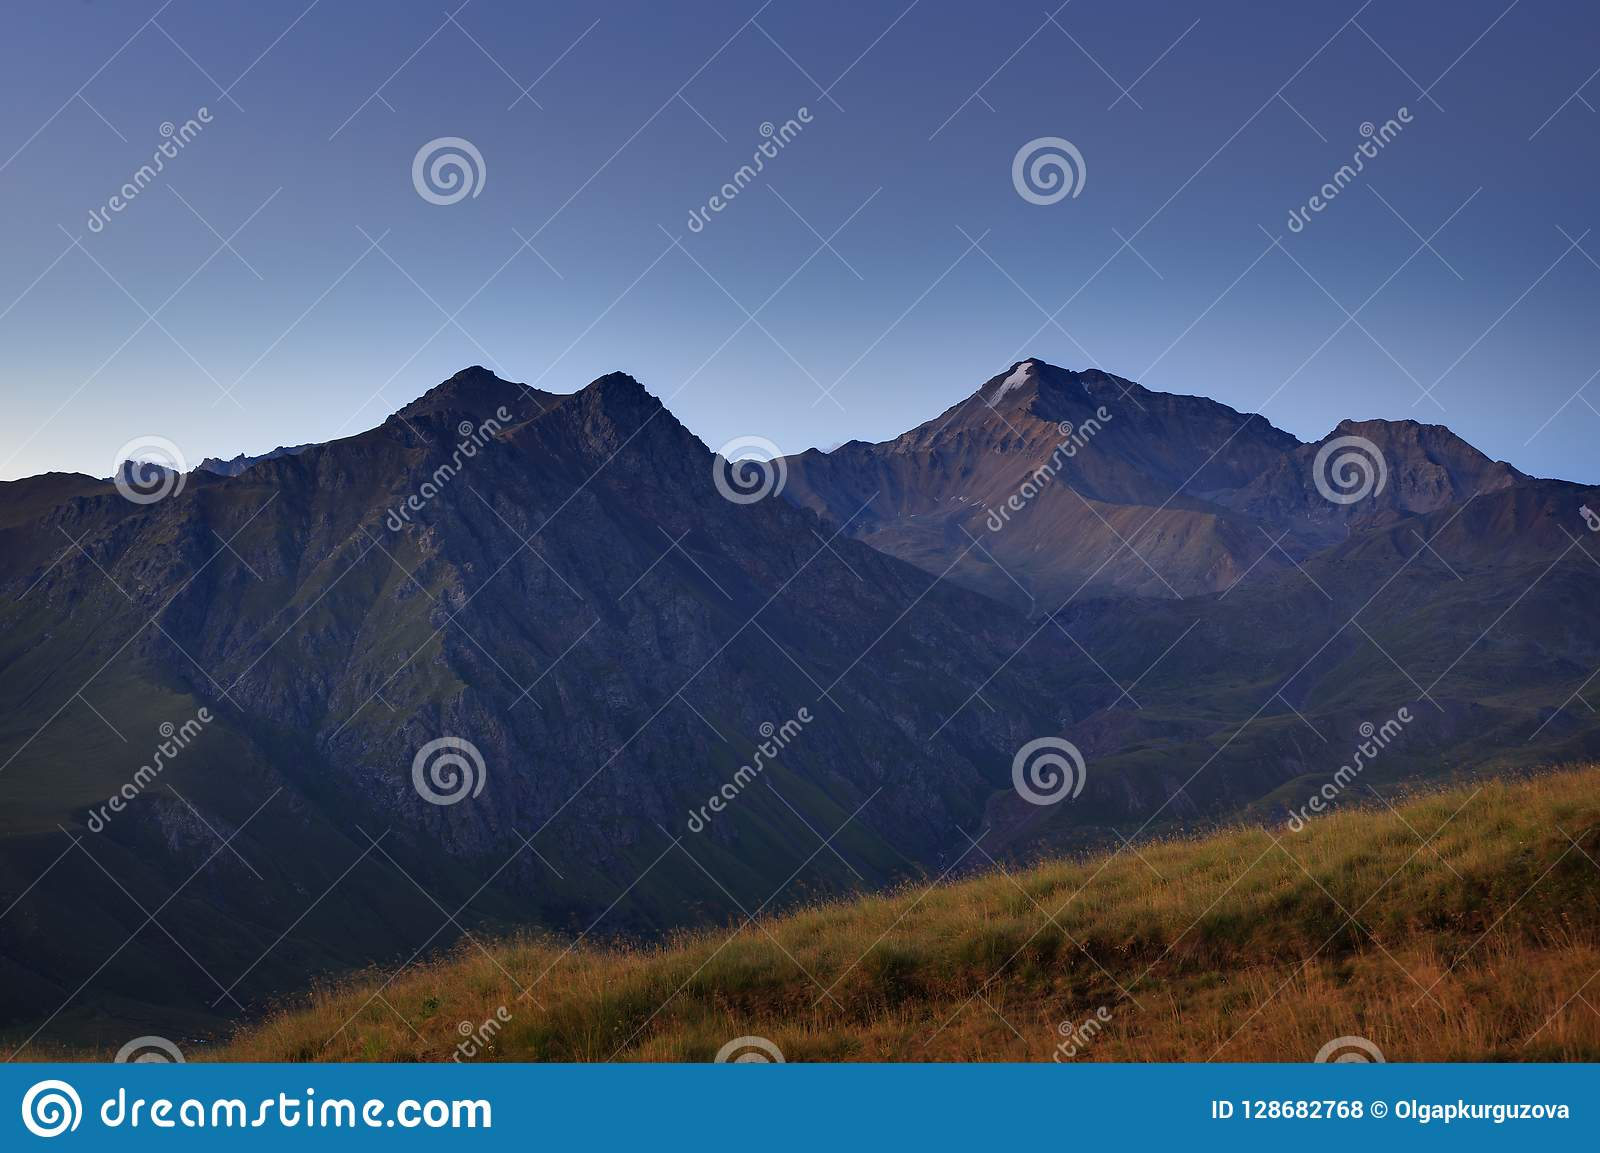 Early morning in the mountain area. Dawn over the mountains